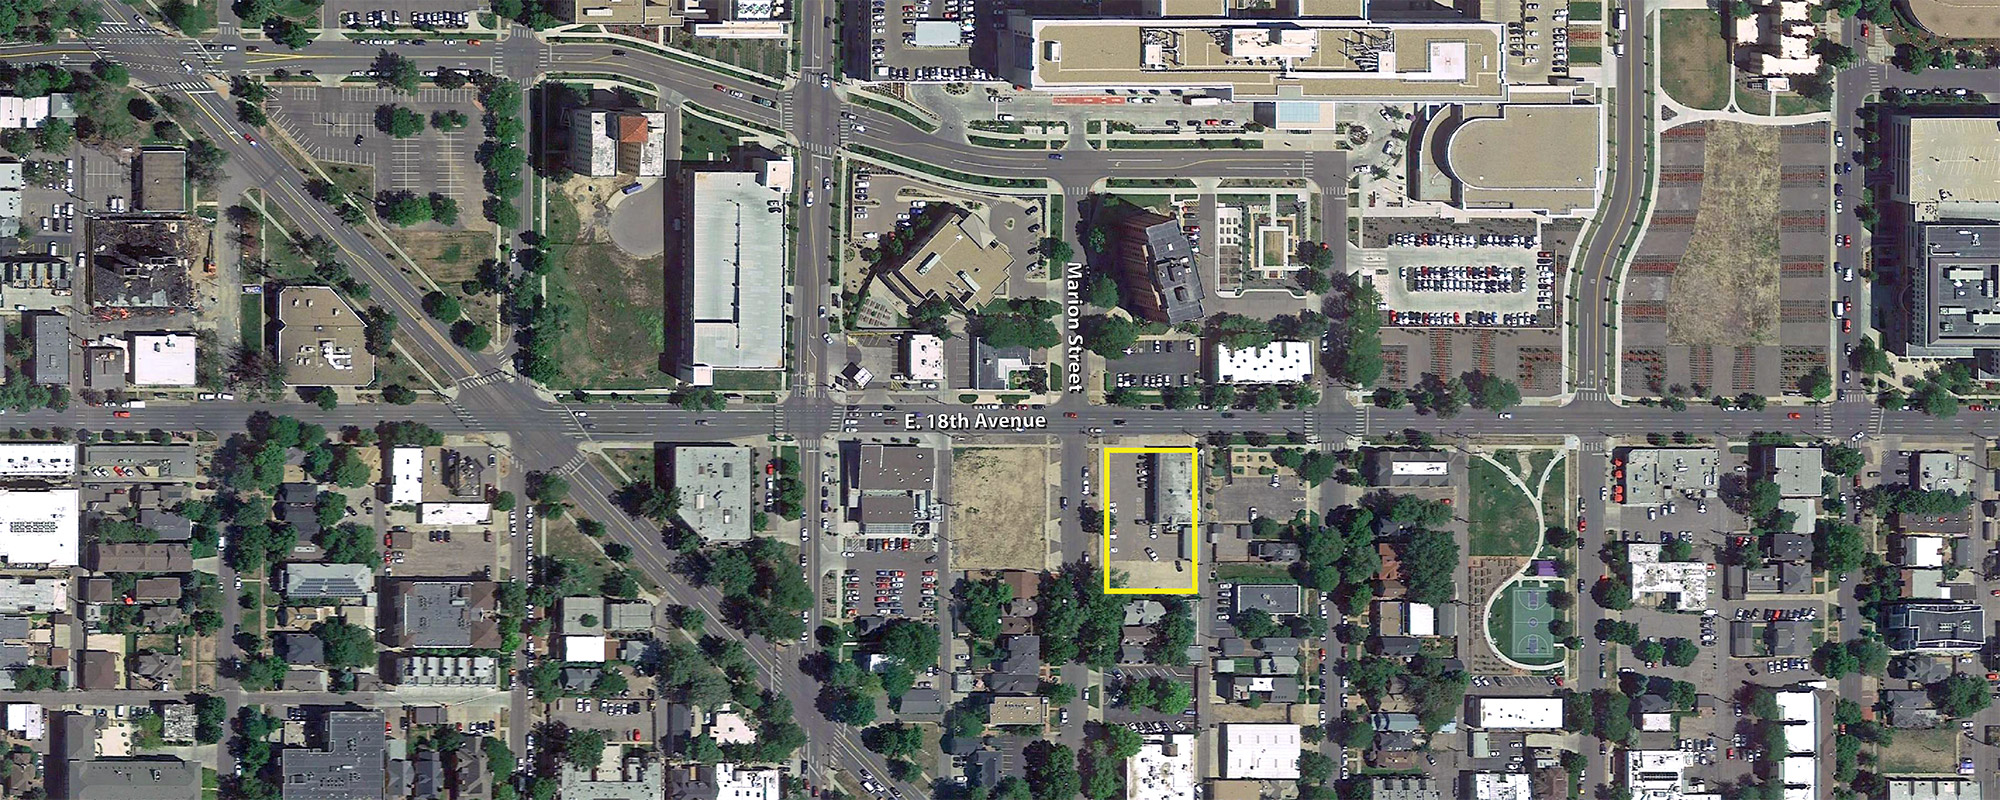 Location of the proposed Broadstone Uptown project, base aerial courtesy Google Earth